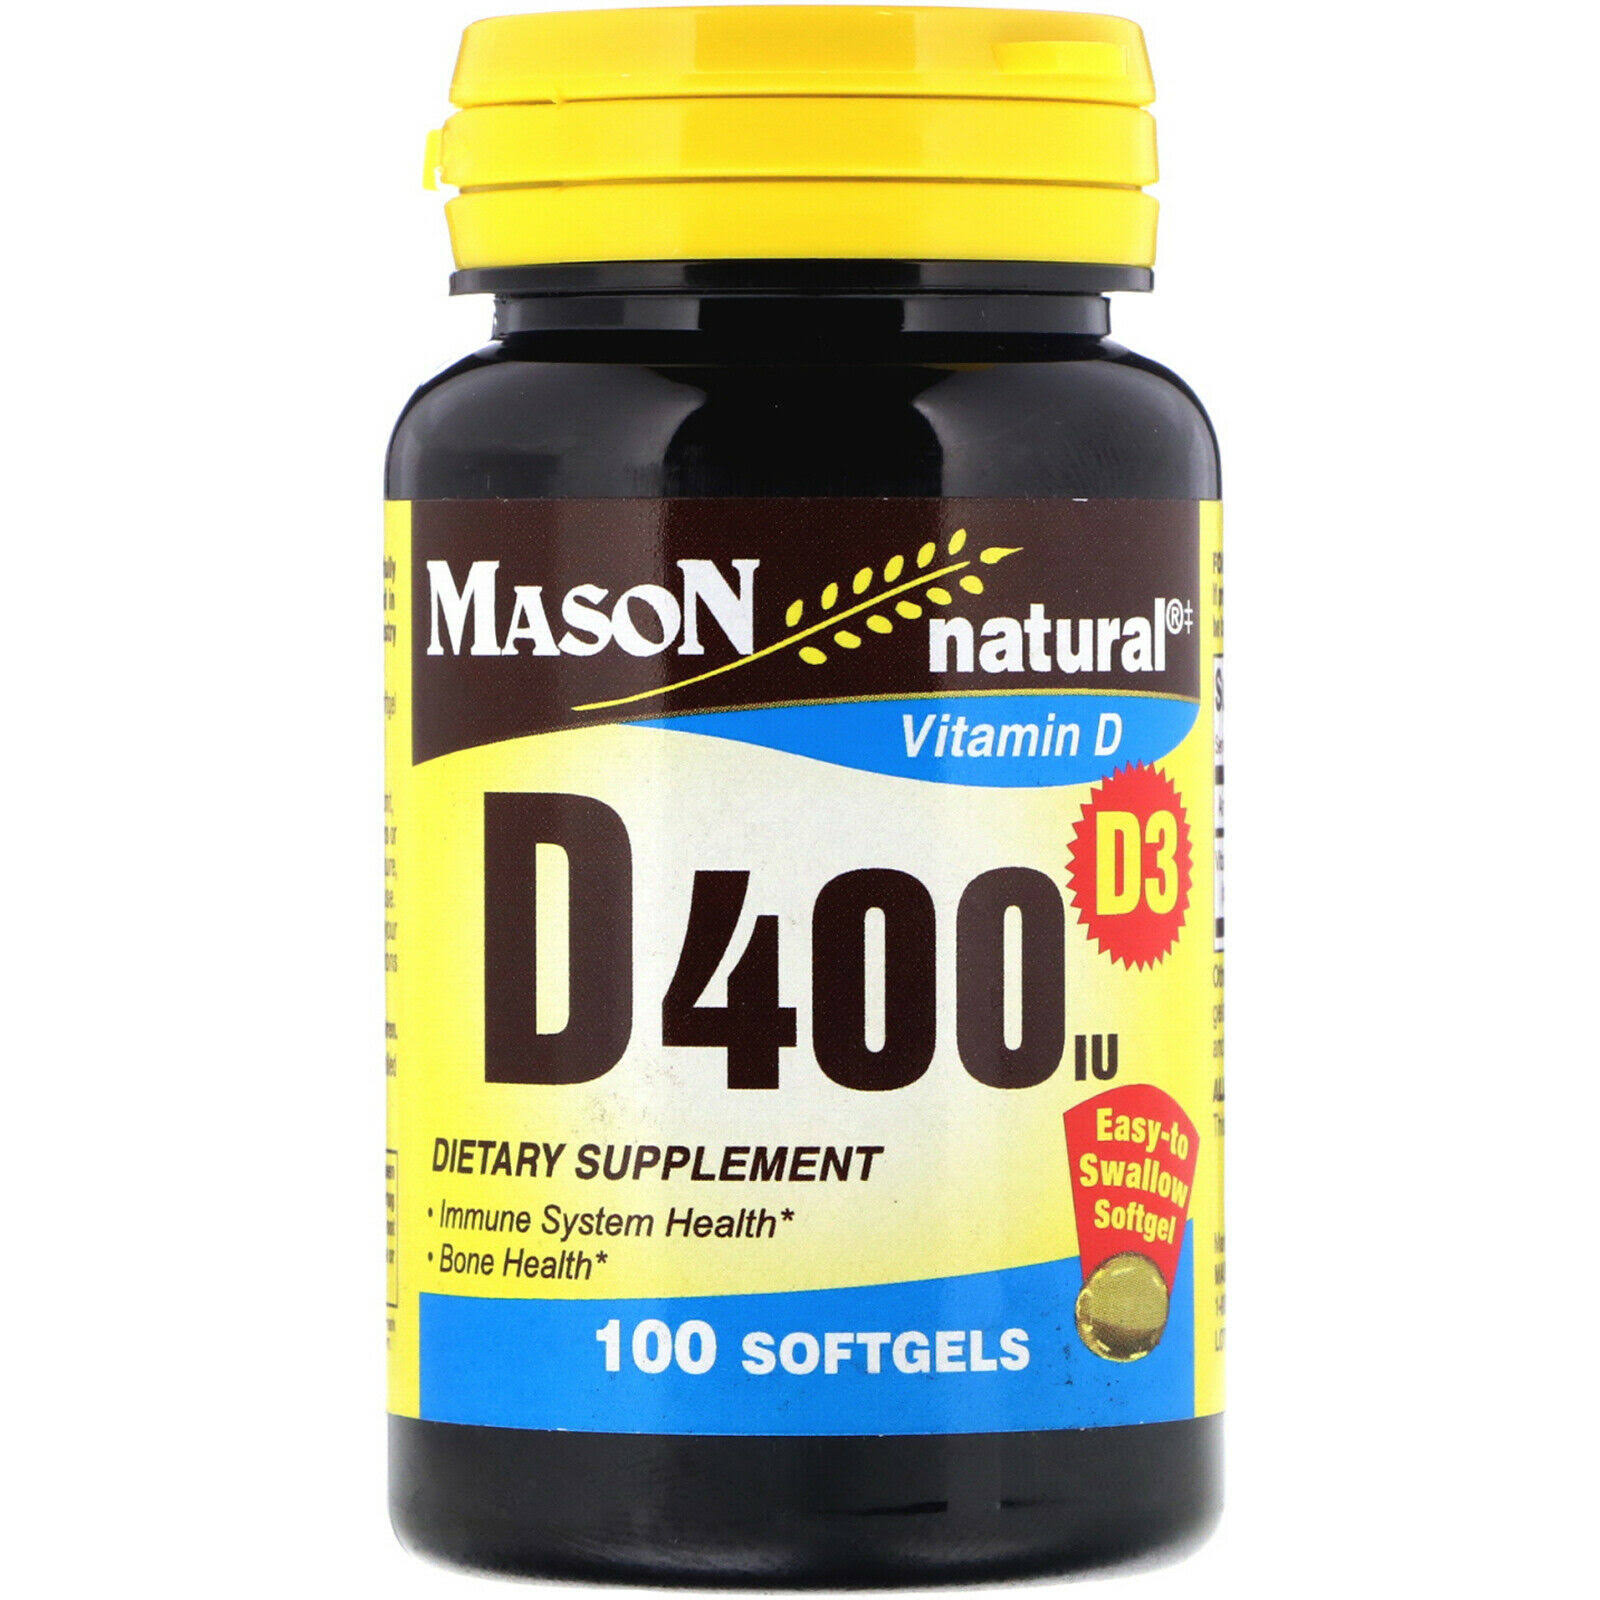 Mason Natural Vitamin D 400 IU Supplement - 100 Softgels